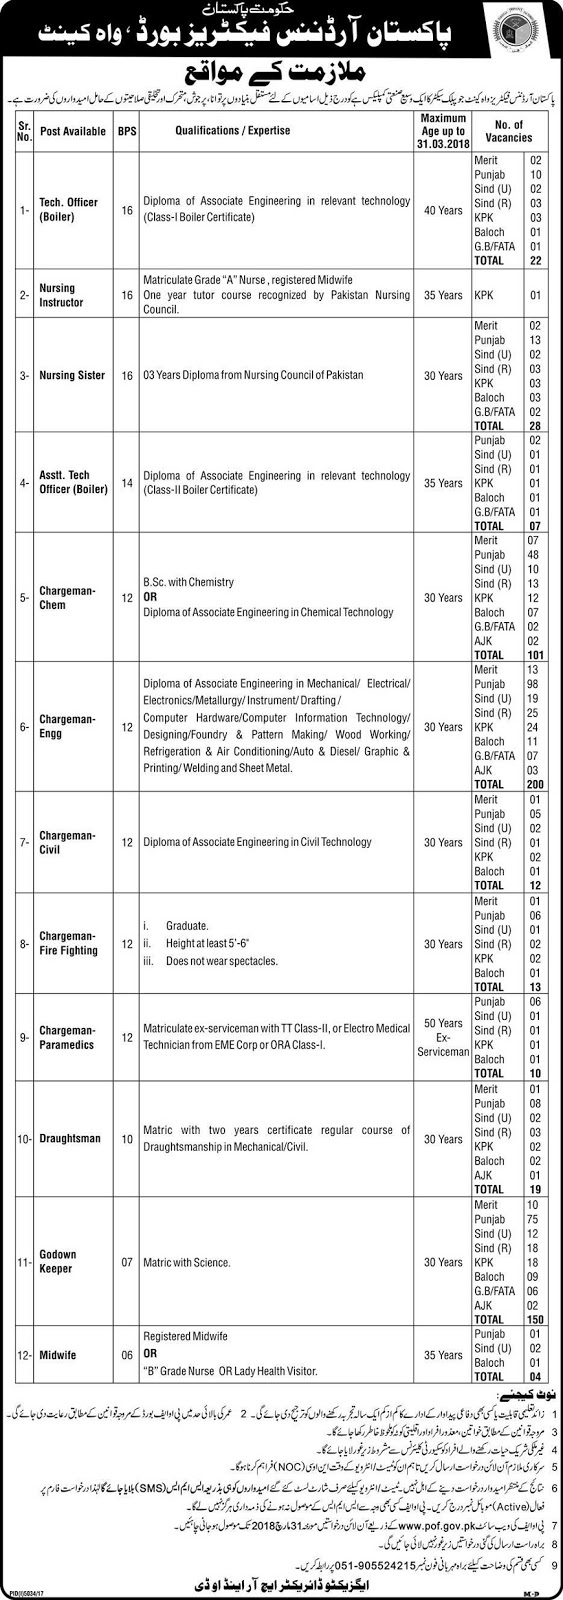 Jobs in Wah Cantt, Jobs in Army, Jobs in Islamabad, Jobs in Rawalpindi